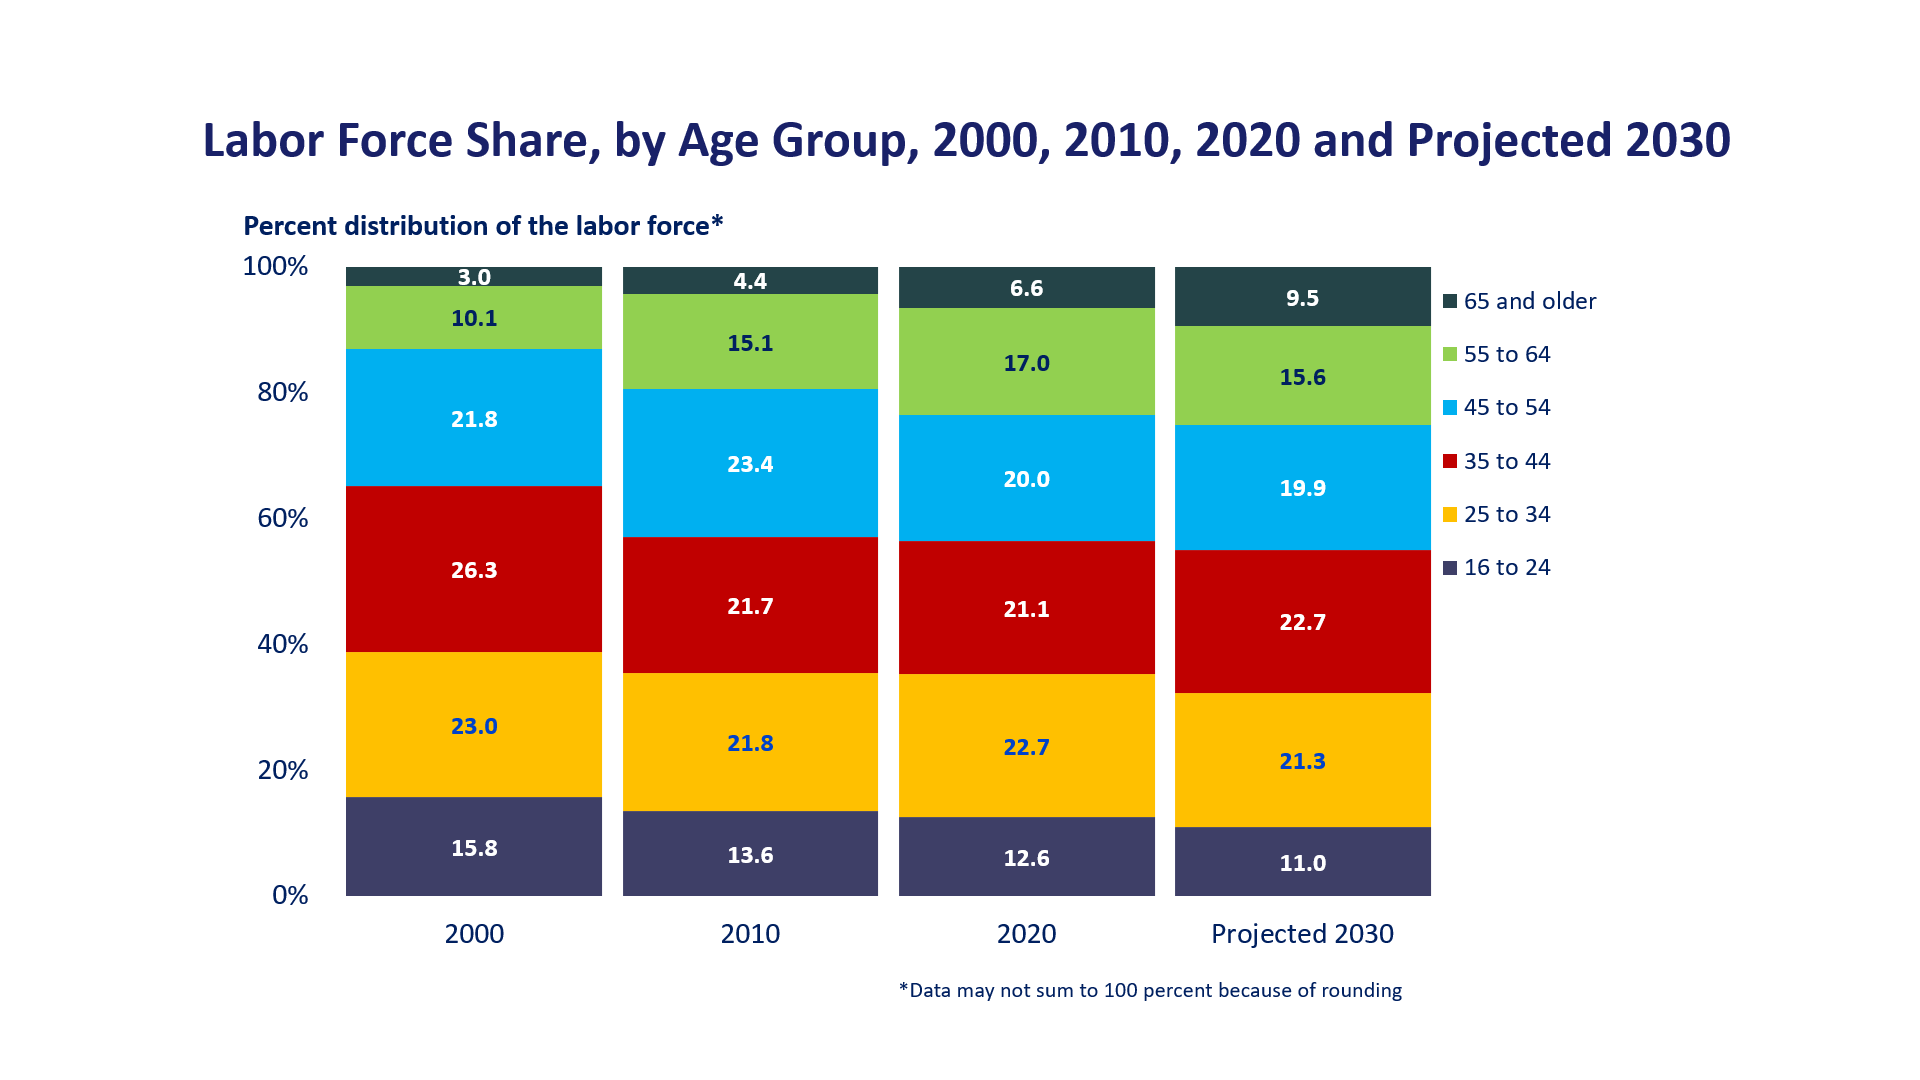 Labor force share, by age group, 1999, 2009, 2019, and projected 2029